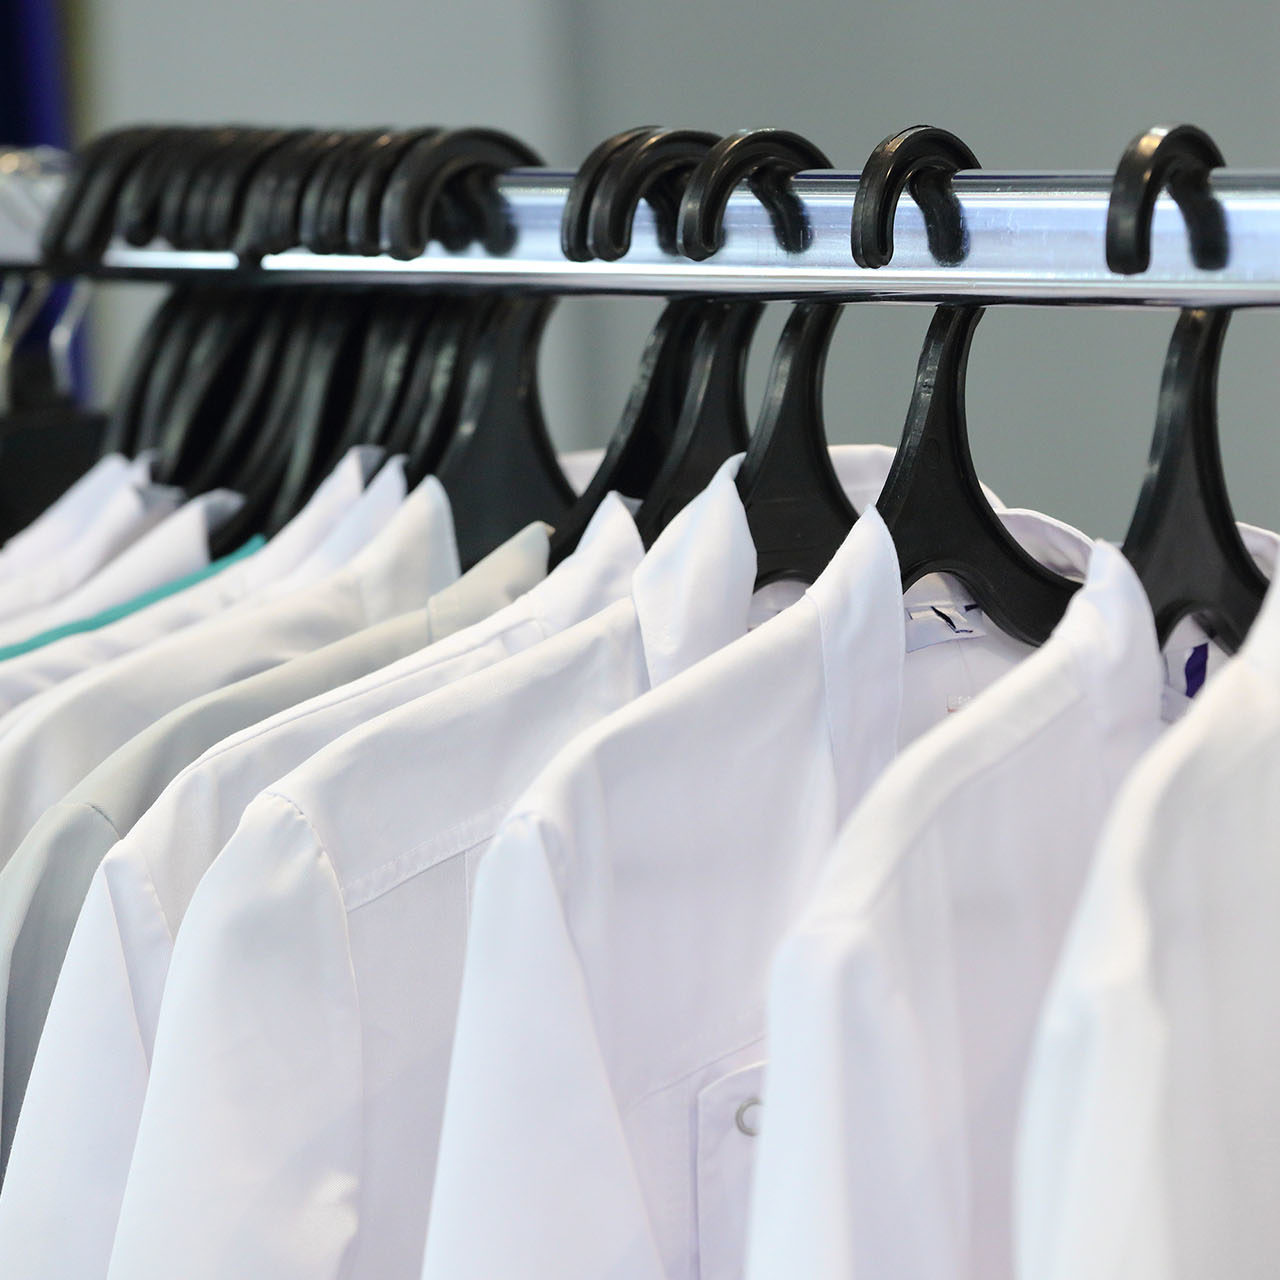 Medical uniform on a hangers in a shop